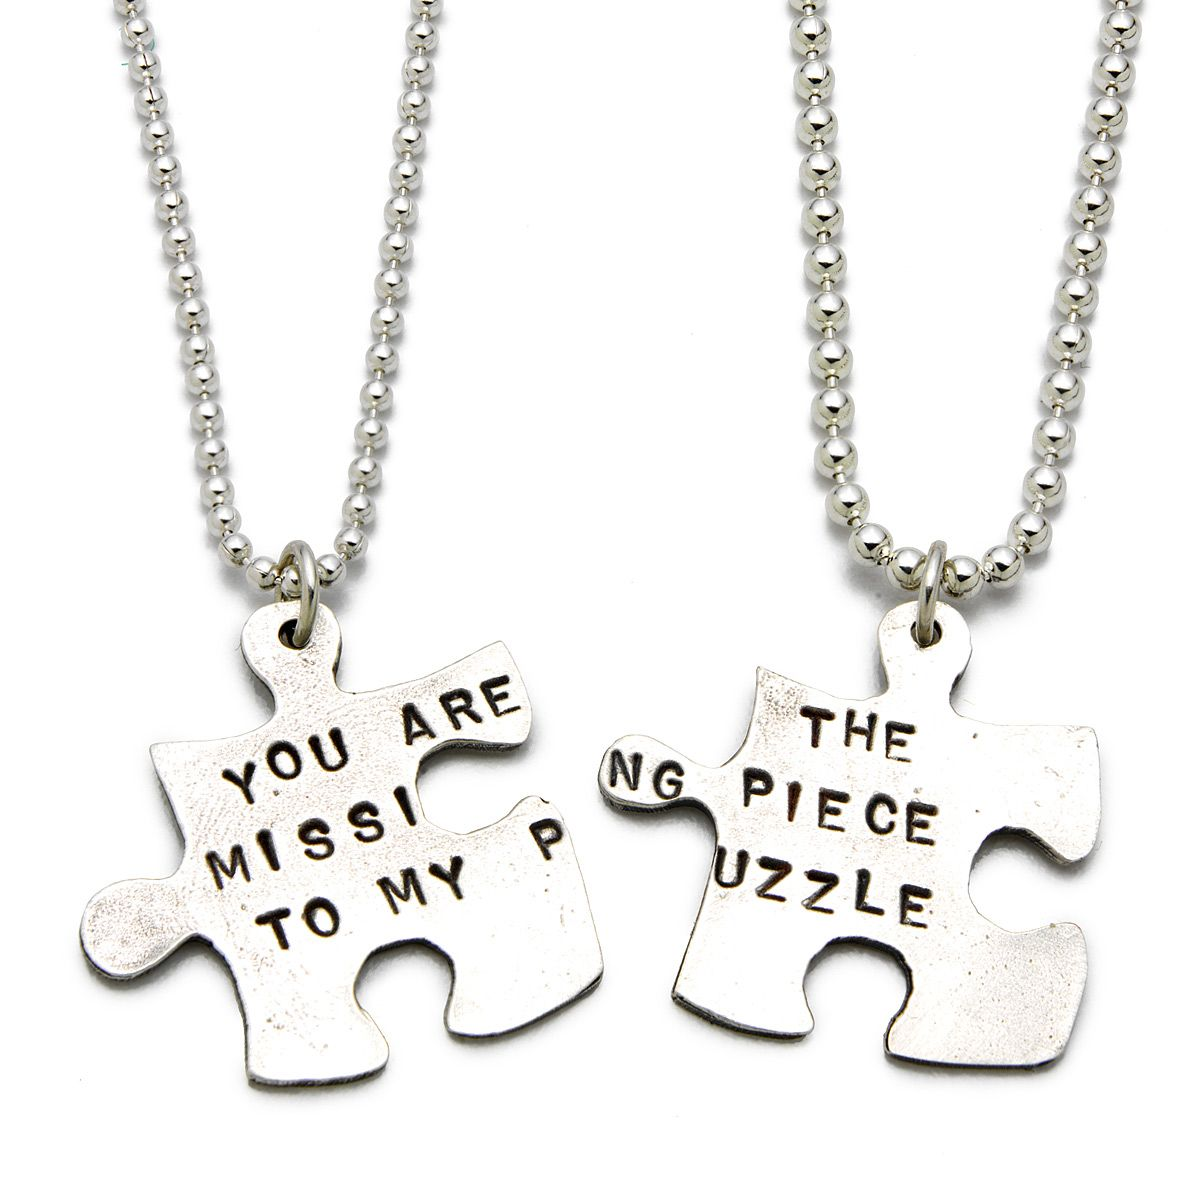 You are the missing piece to my puzzle -RB